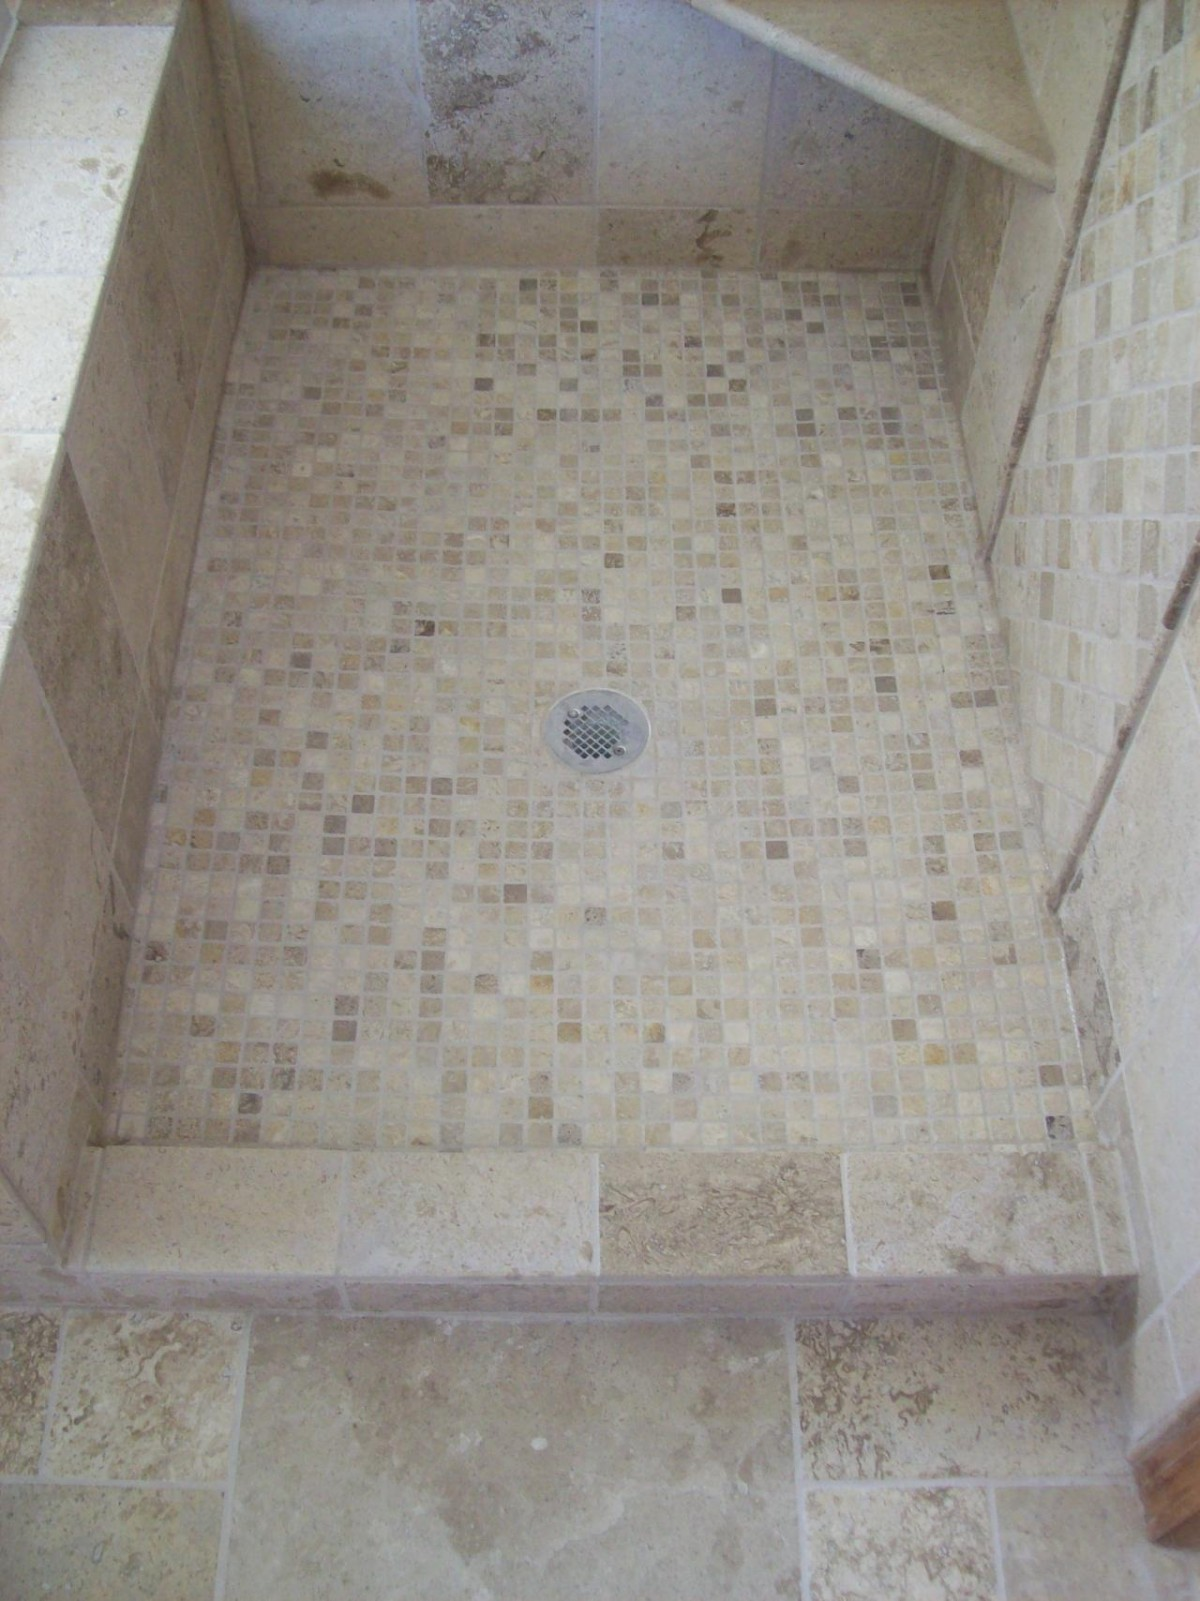 products-renovations-decorating-styles-white-renovated-cork-setter-coverings-restroom-exterior-space-decoration-tumbled-floor-how-to-tile-a-bathroom-floor-1200x1601